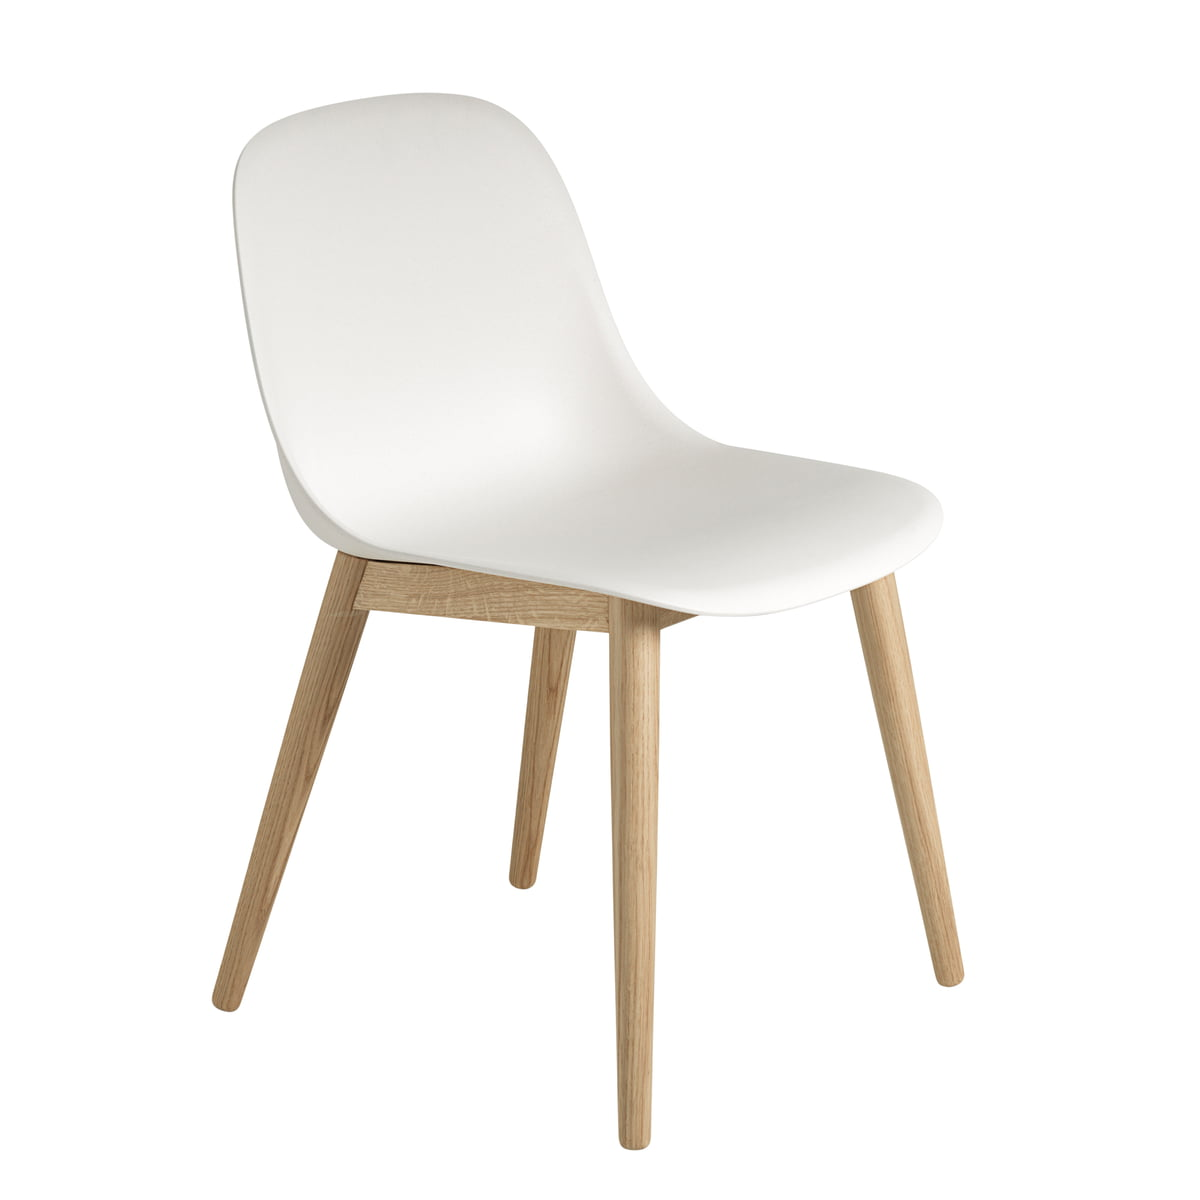 the fiber side chair wood by muuto. Black Bedroom Furniture Sets. Home Design Ideas